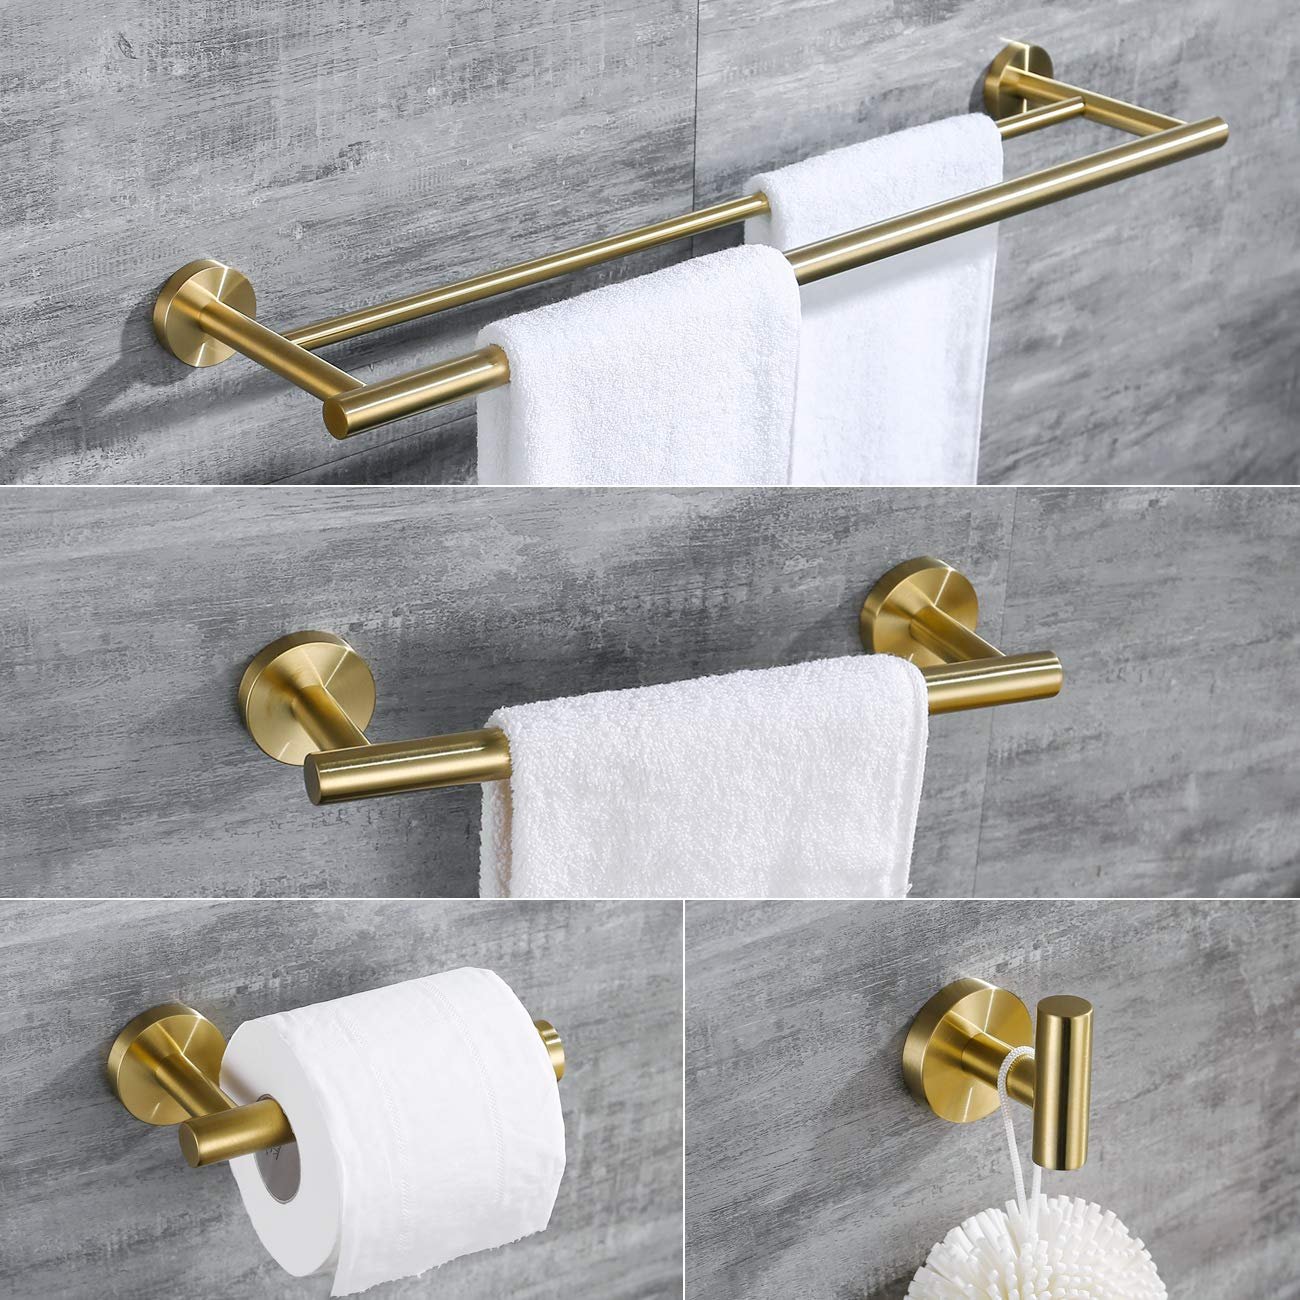 Hoooh 4-Piece Bathroom Accessories Set Stainless Steel Wall Mount Brushed Gold - Includes Double Towel Bar, Hand Towel Rack, Toilet Paper Holder, Robe Hooks, BS100S4-BG